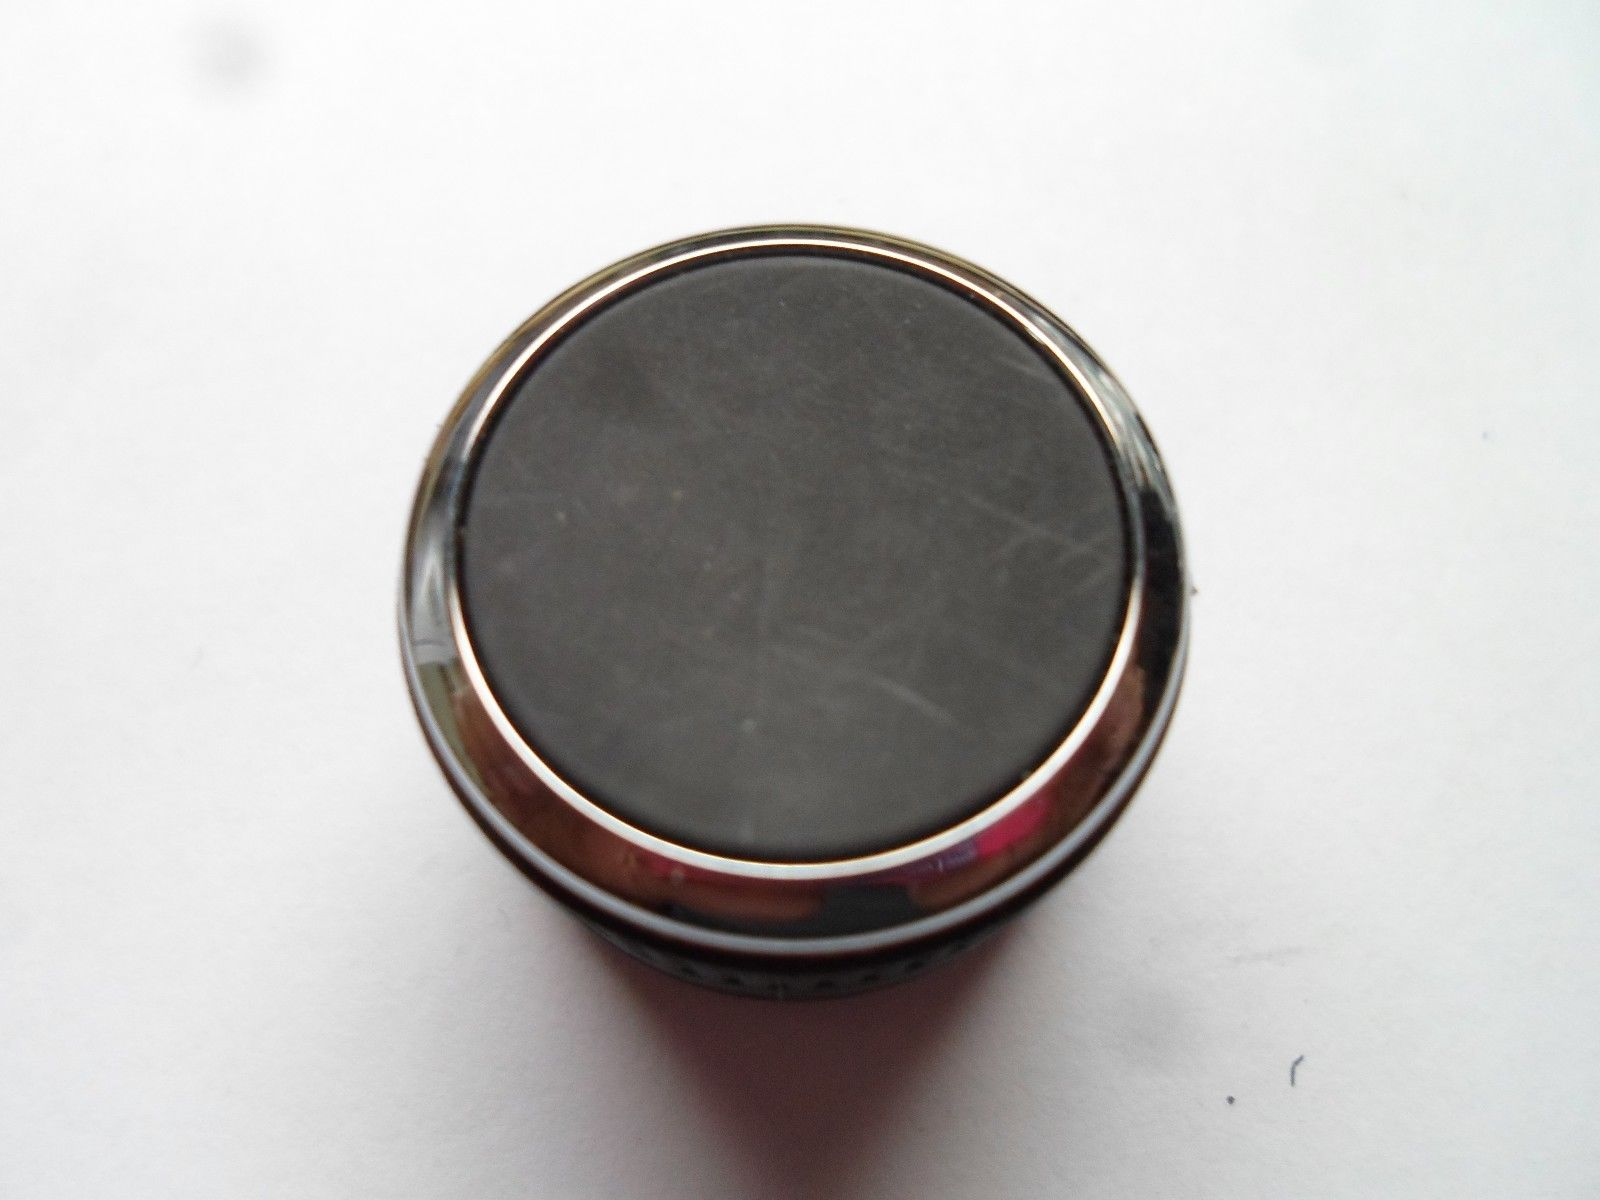 2011 BUICK REGAL RADIO STEREO TUNER KNOB  OEM  FREE SHIPPING!